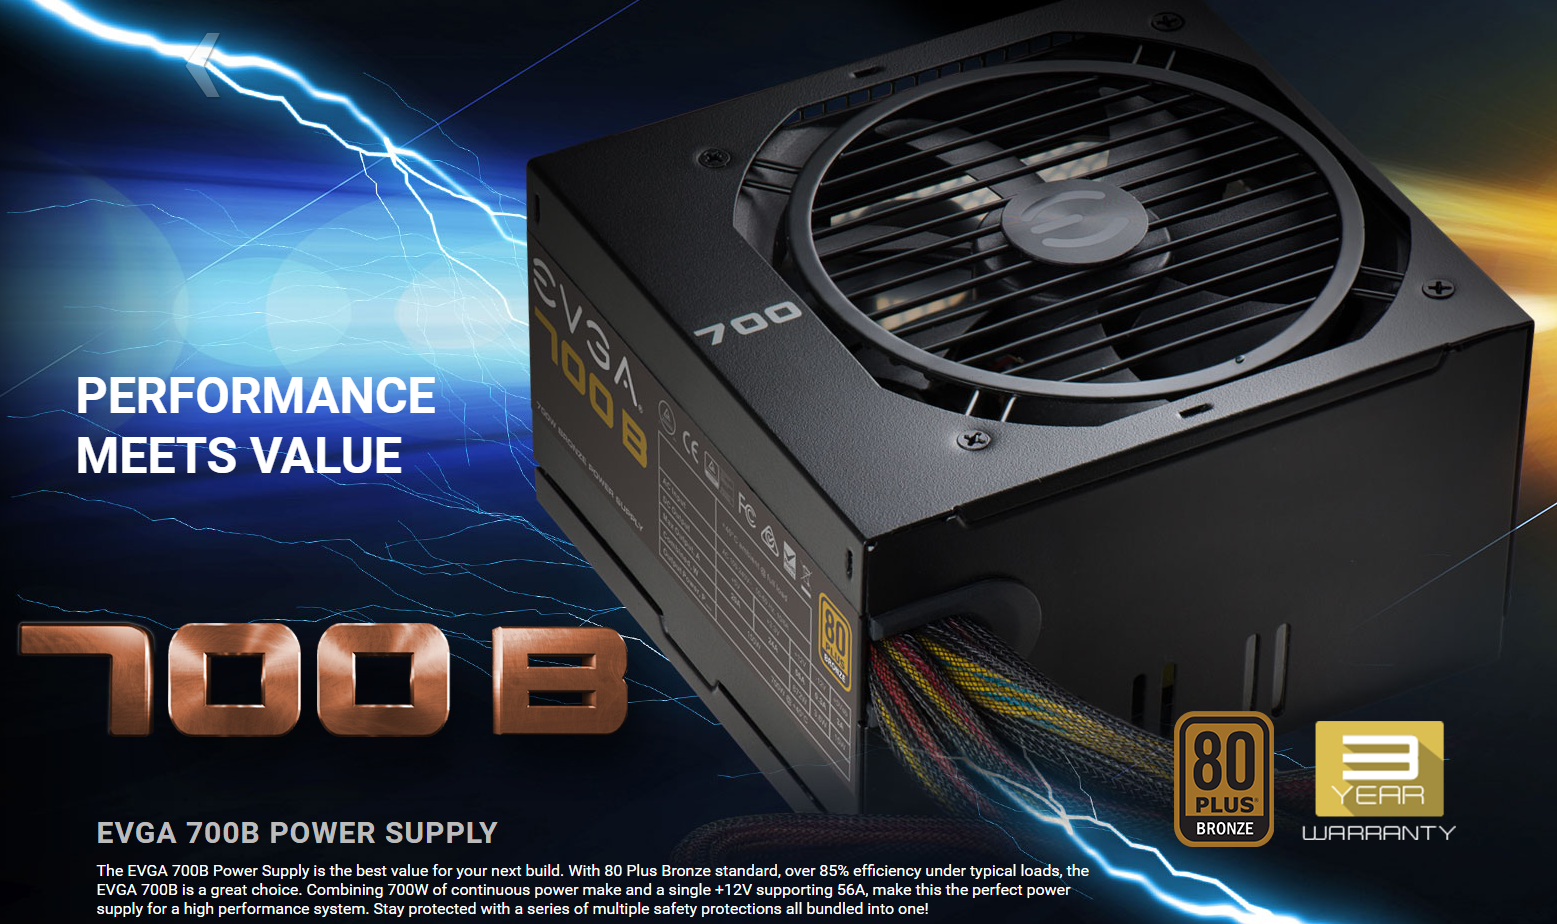 Photo of Generous Power Supply at Affordable Price: EVGA has an interesting offer for computer components